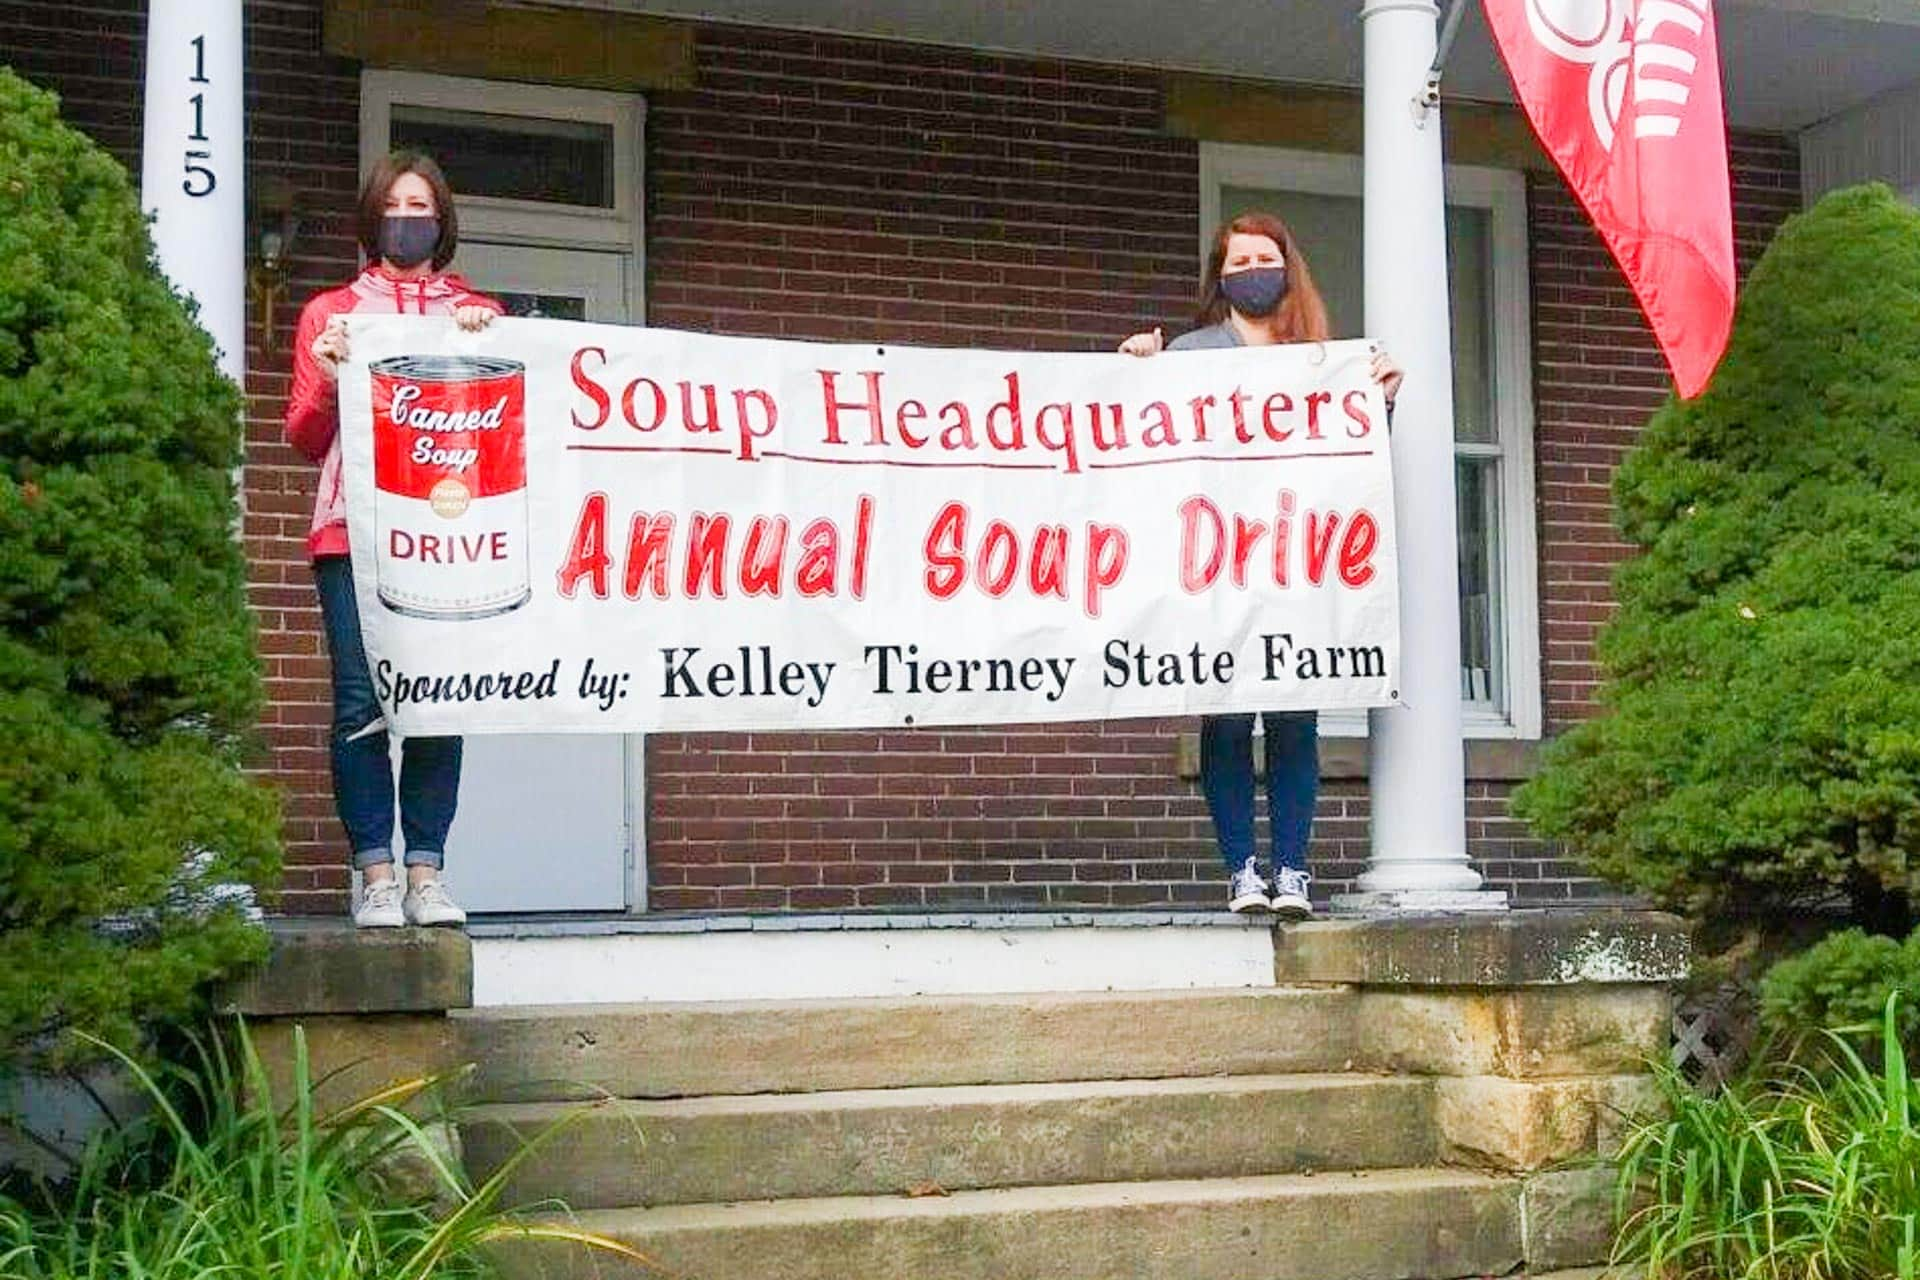 Can you spare a can of soup? Kelley Tierney State Farm aims to collect 4,000 cans by October's end